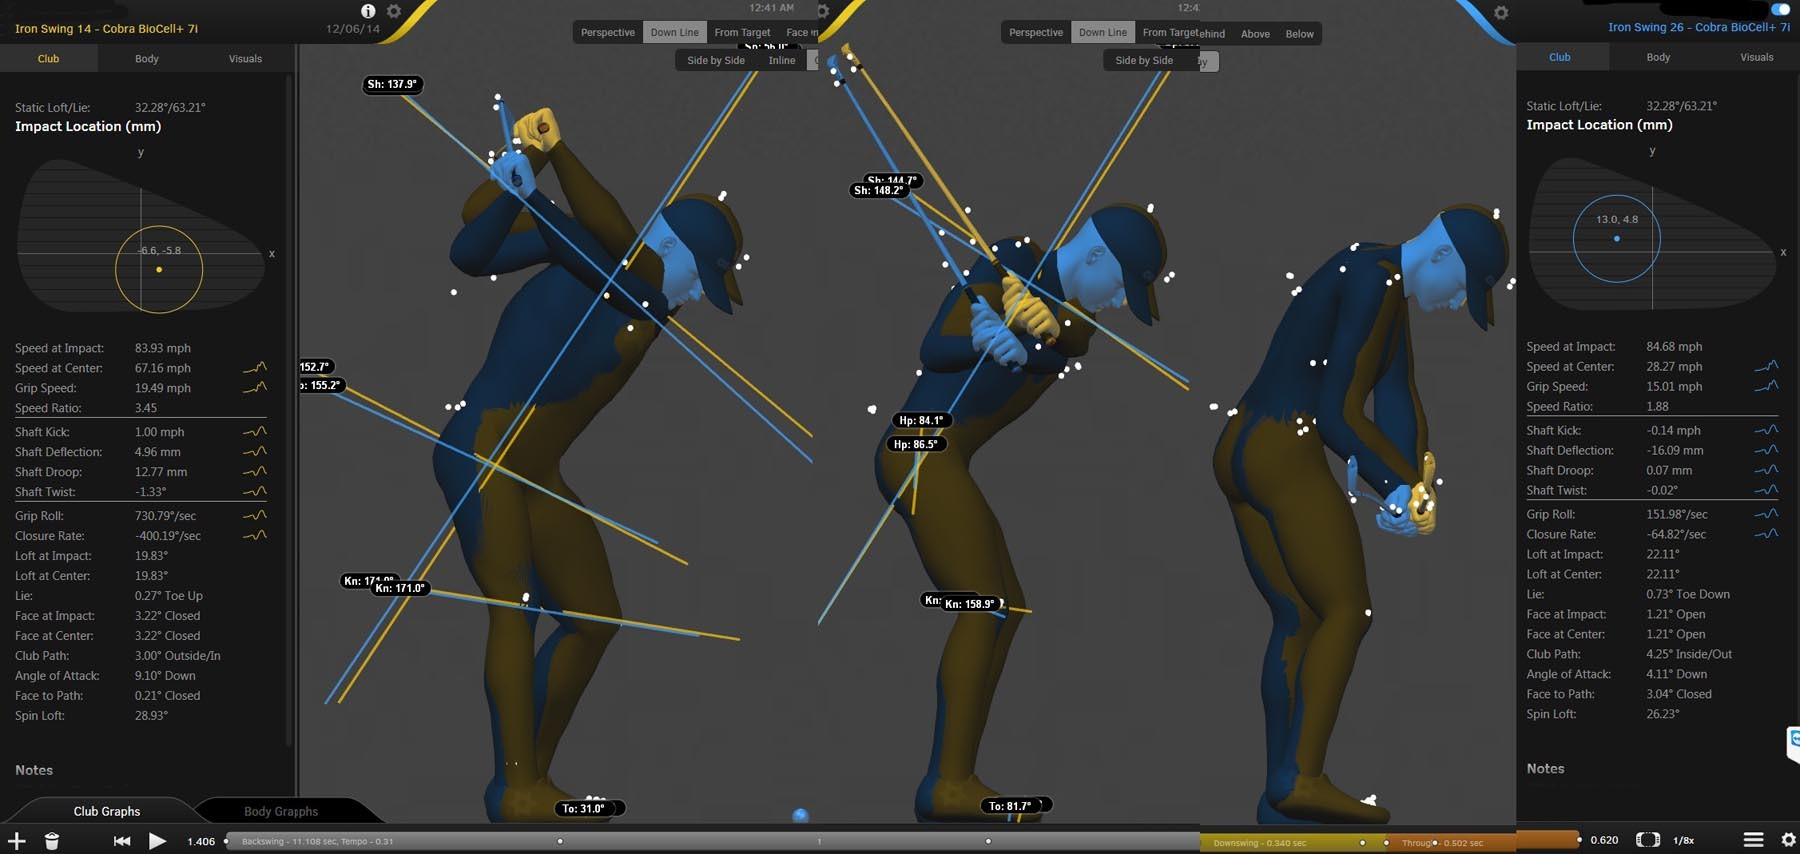 3 images of Rory McIlroy in 3d showing the blueprint of his swing mechanics at the various stages of the golf swing